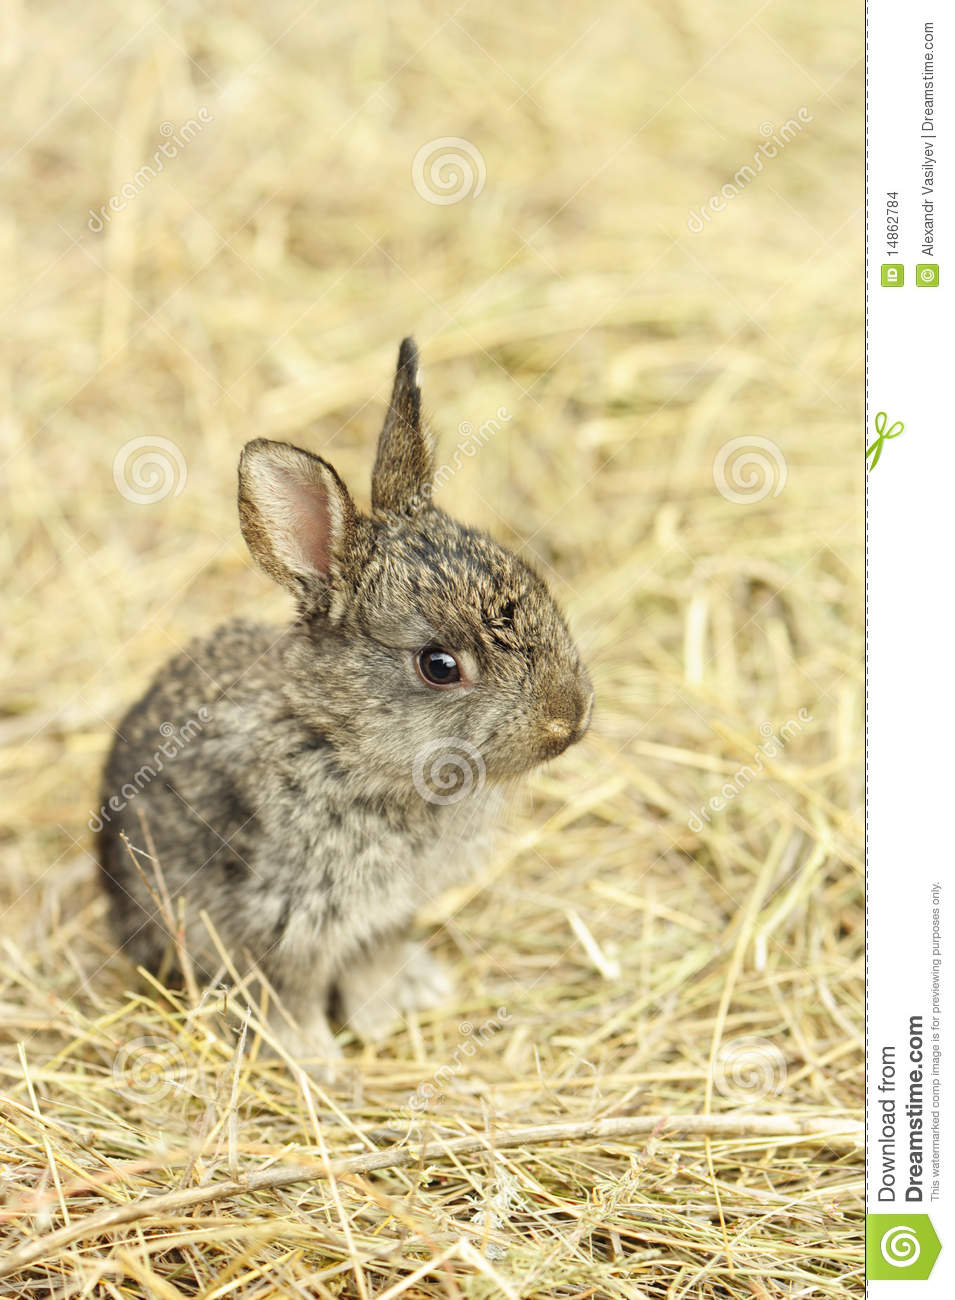 Rabbit on a hay